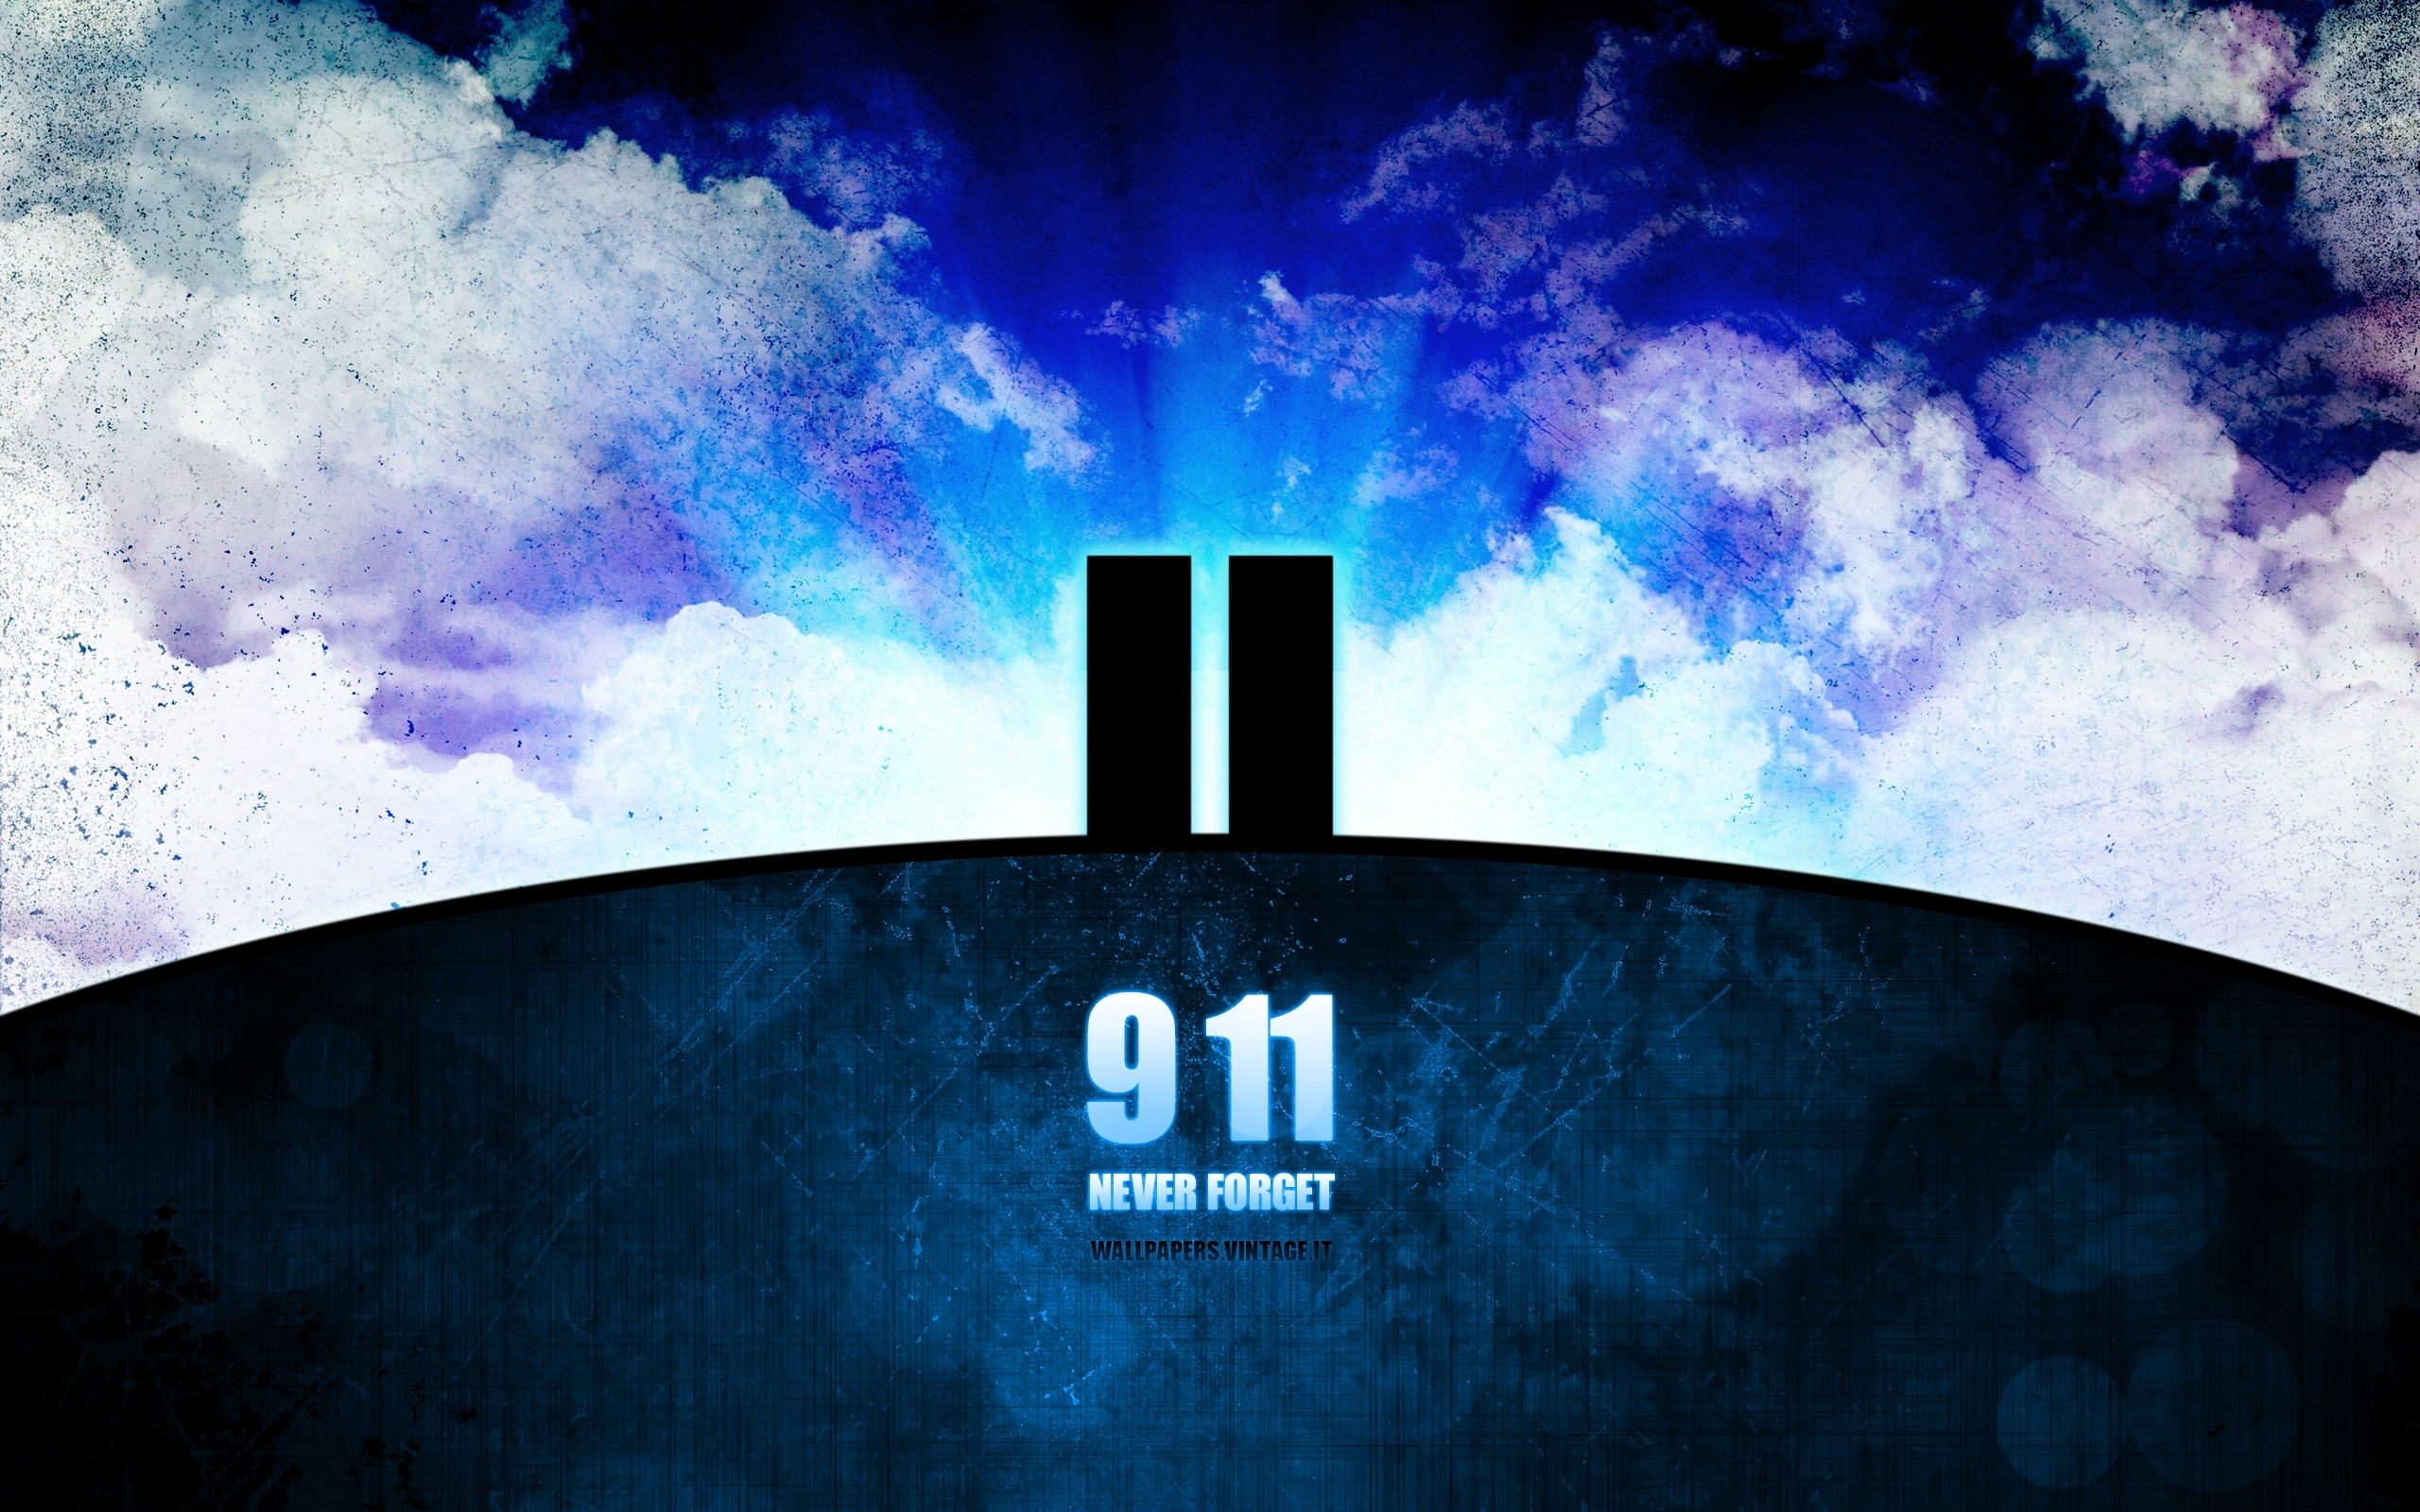 9/11 wallpaper - free desktop hd ipad iphone wallpapers